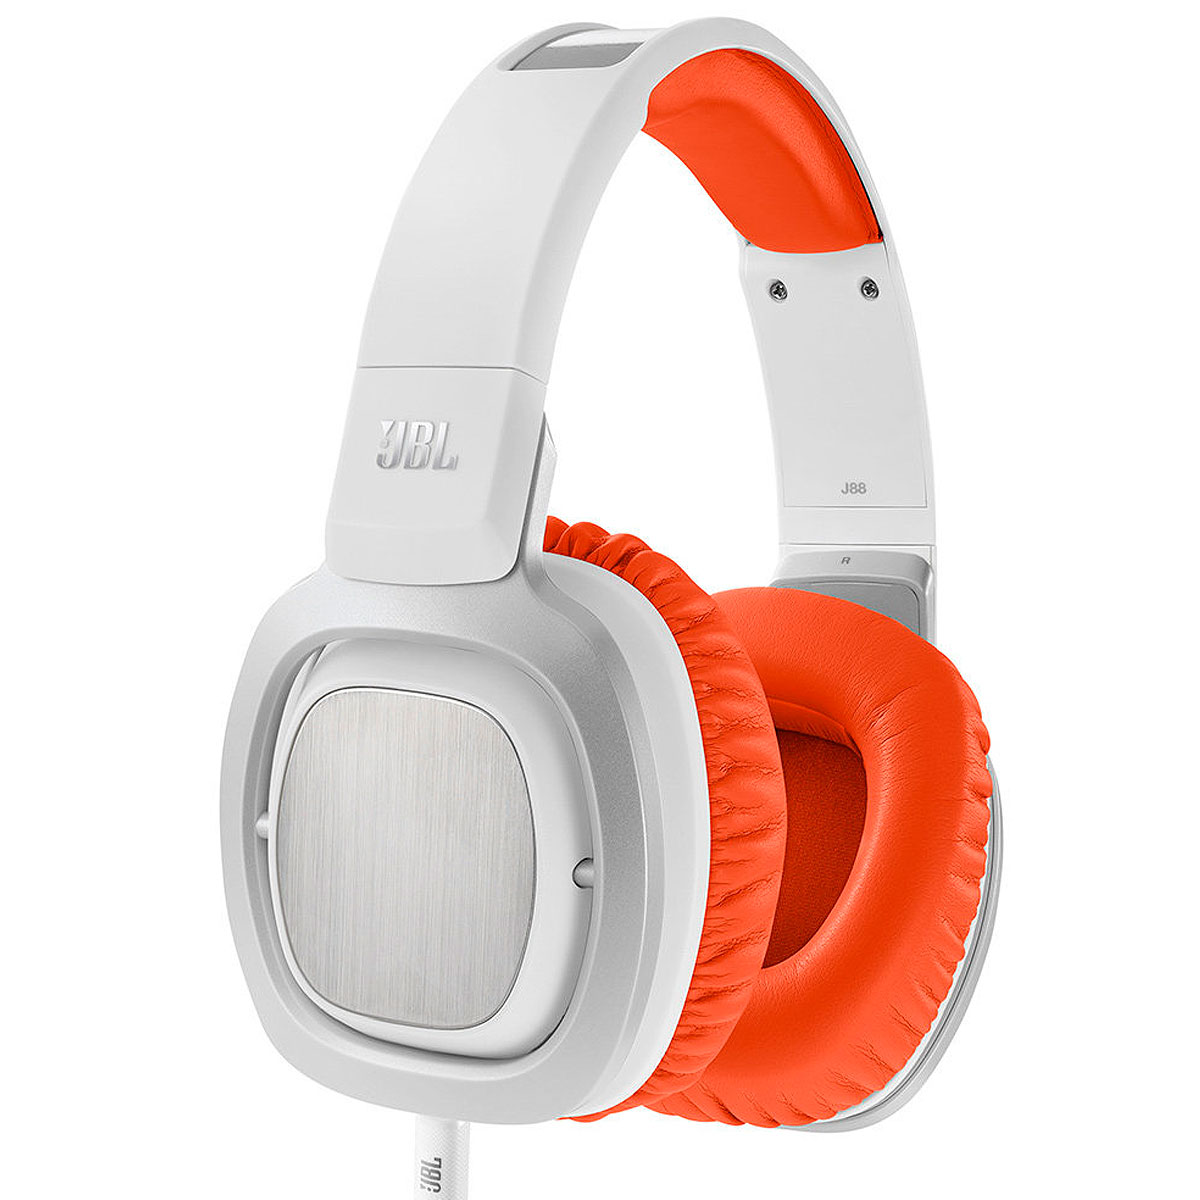 J88i - Fone de Ouvido Over-Ear c/ Microfone p/ iPhone / iPad / iPod J 88i - JBL